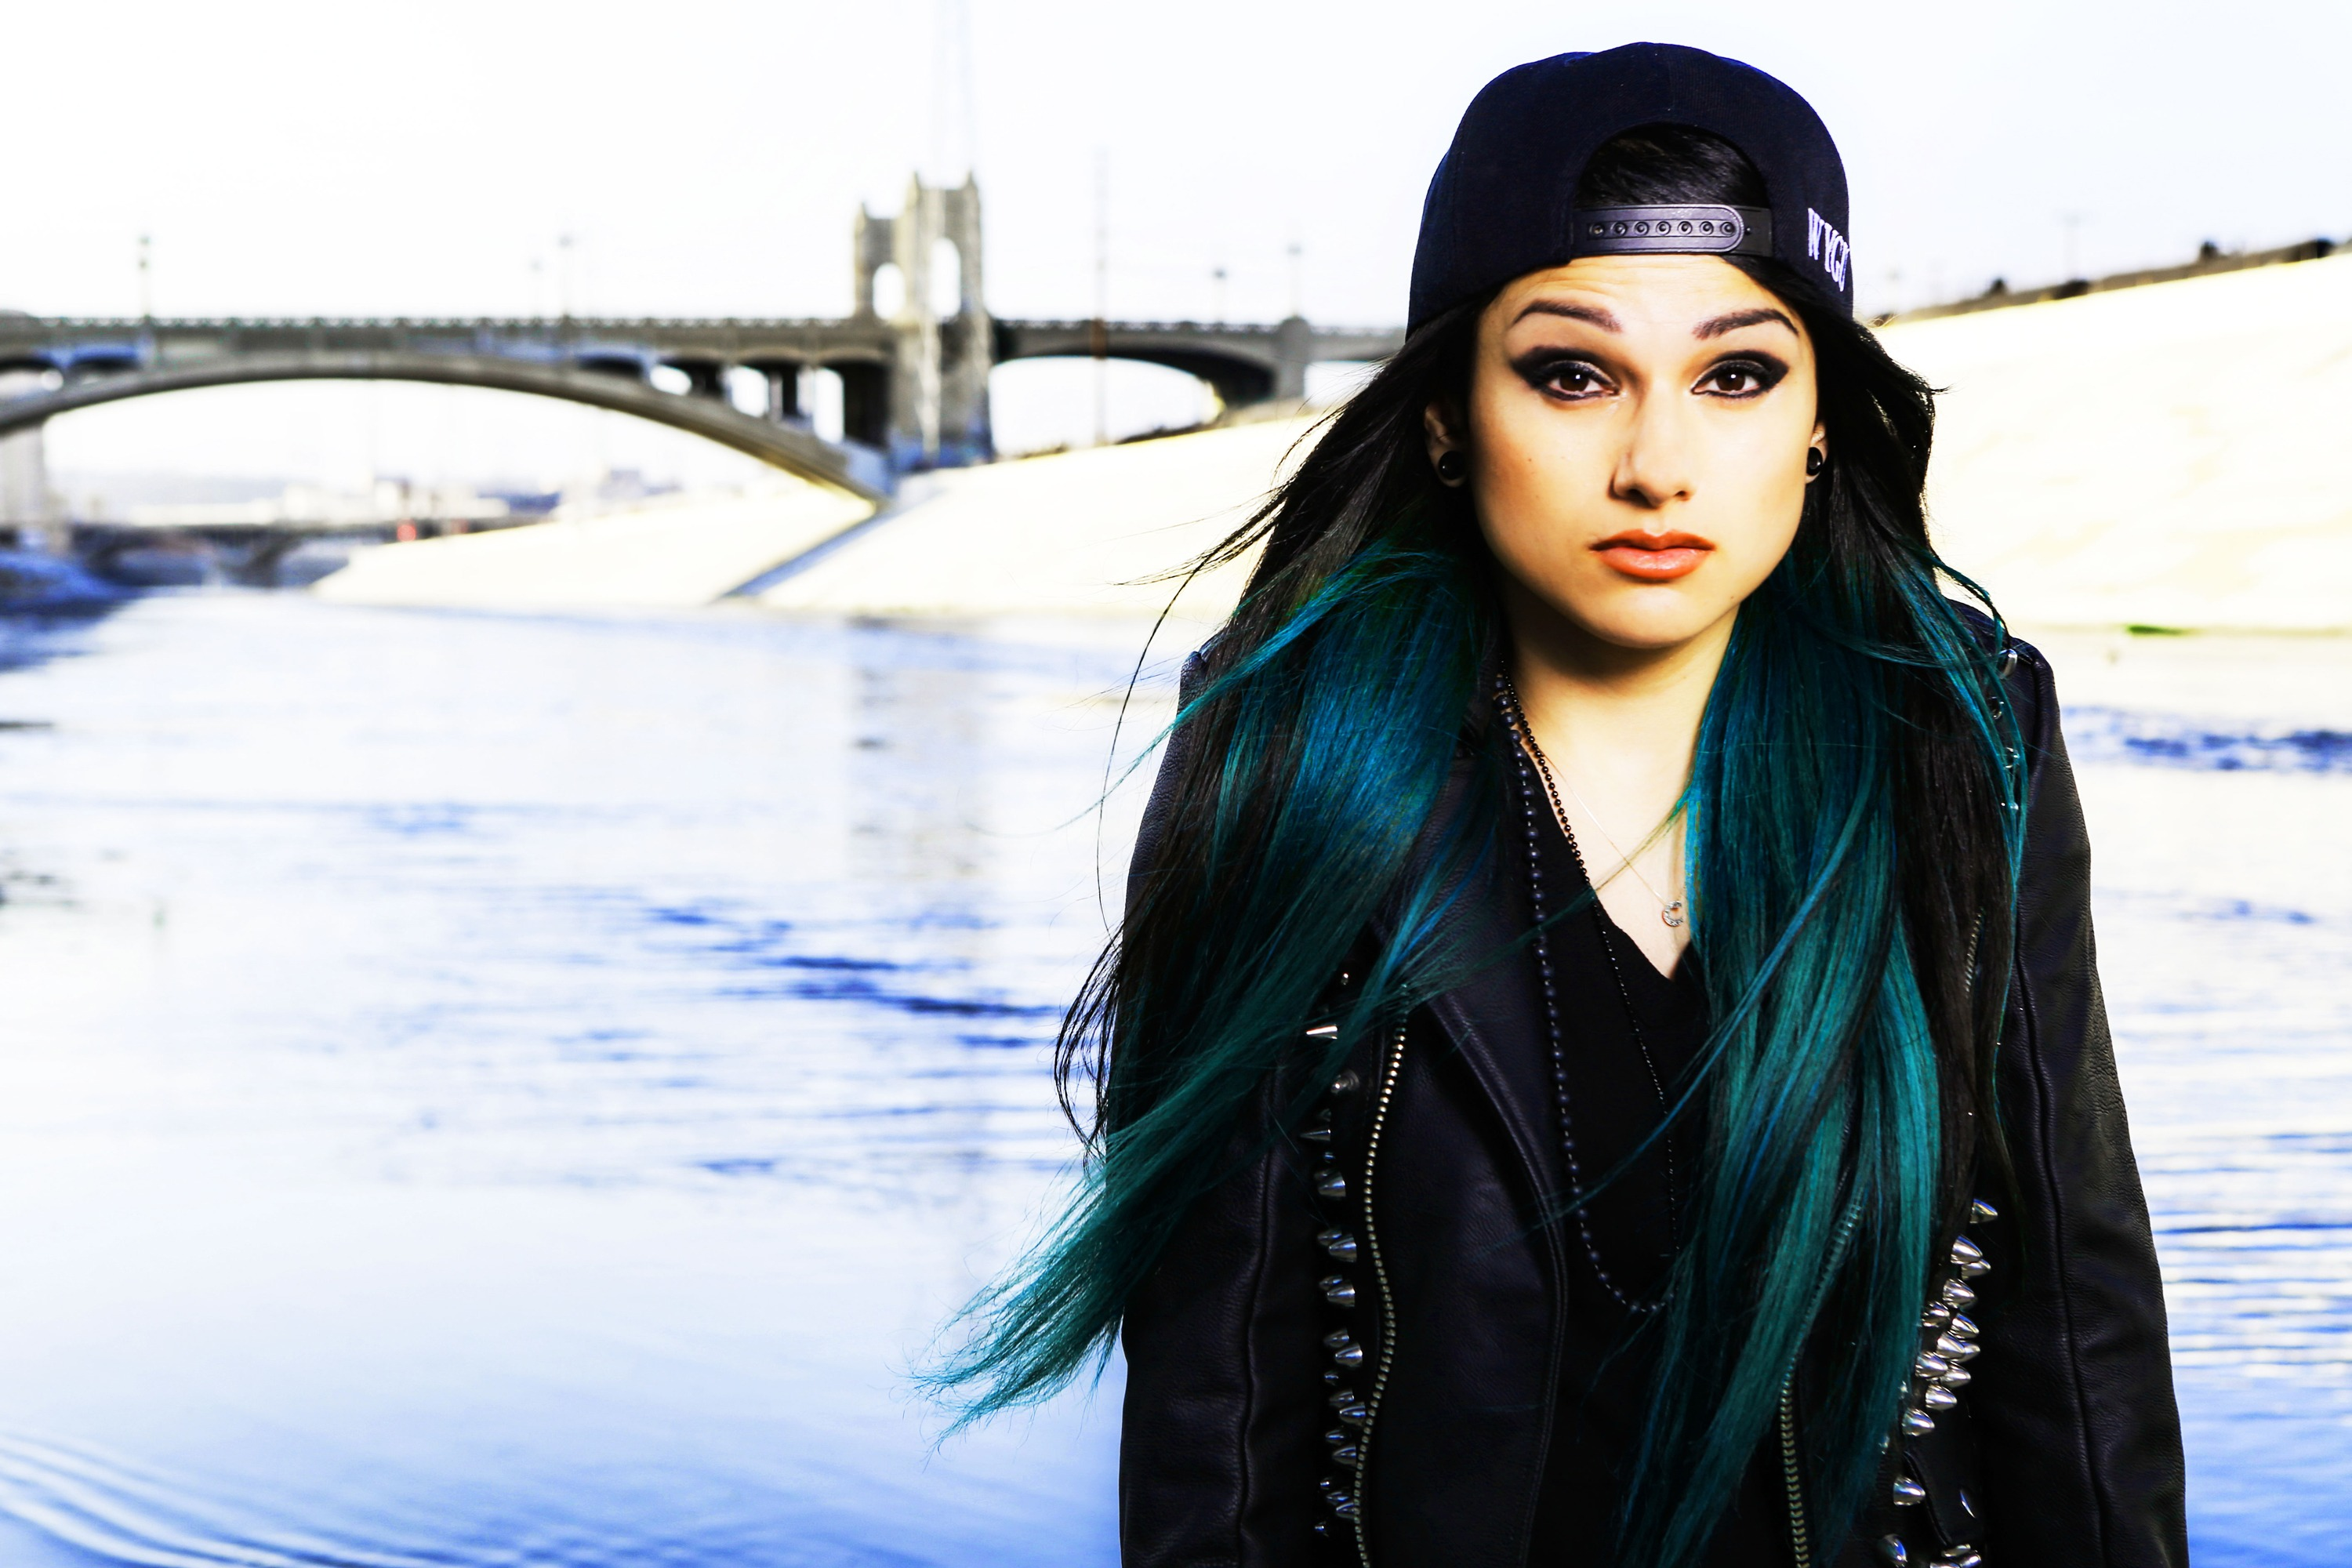 Animated Wallpapers For Pc Desktop Free Download Download Snow Tha Product Wallpaper Gallery